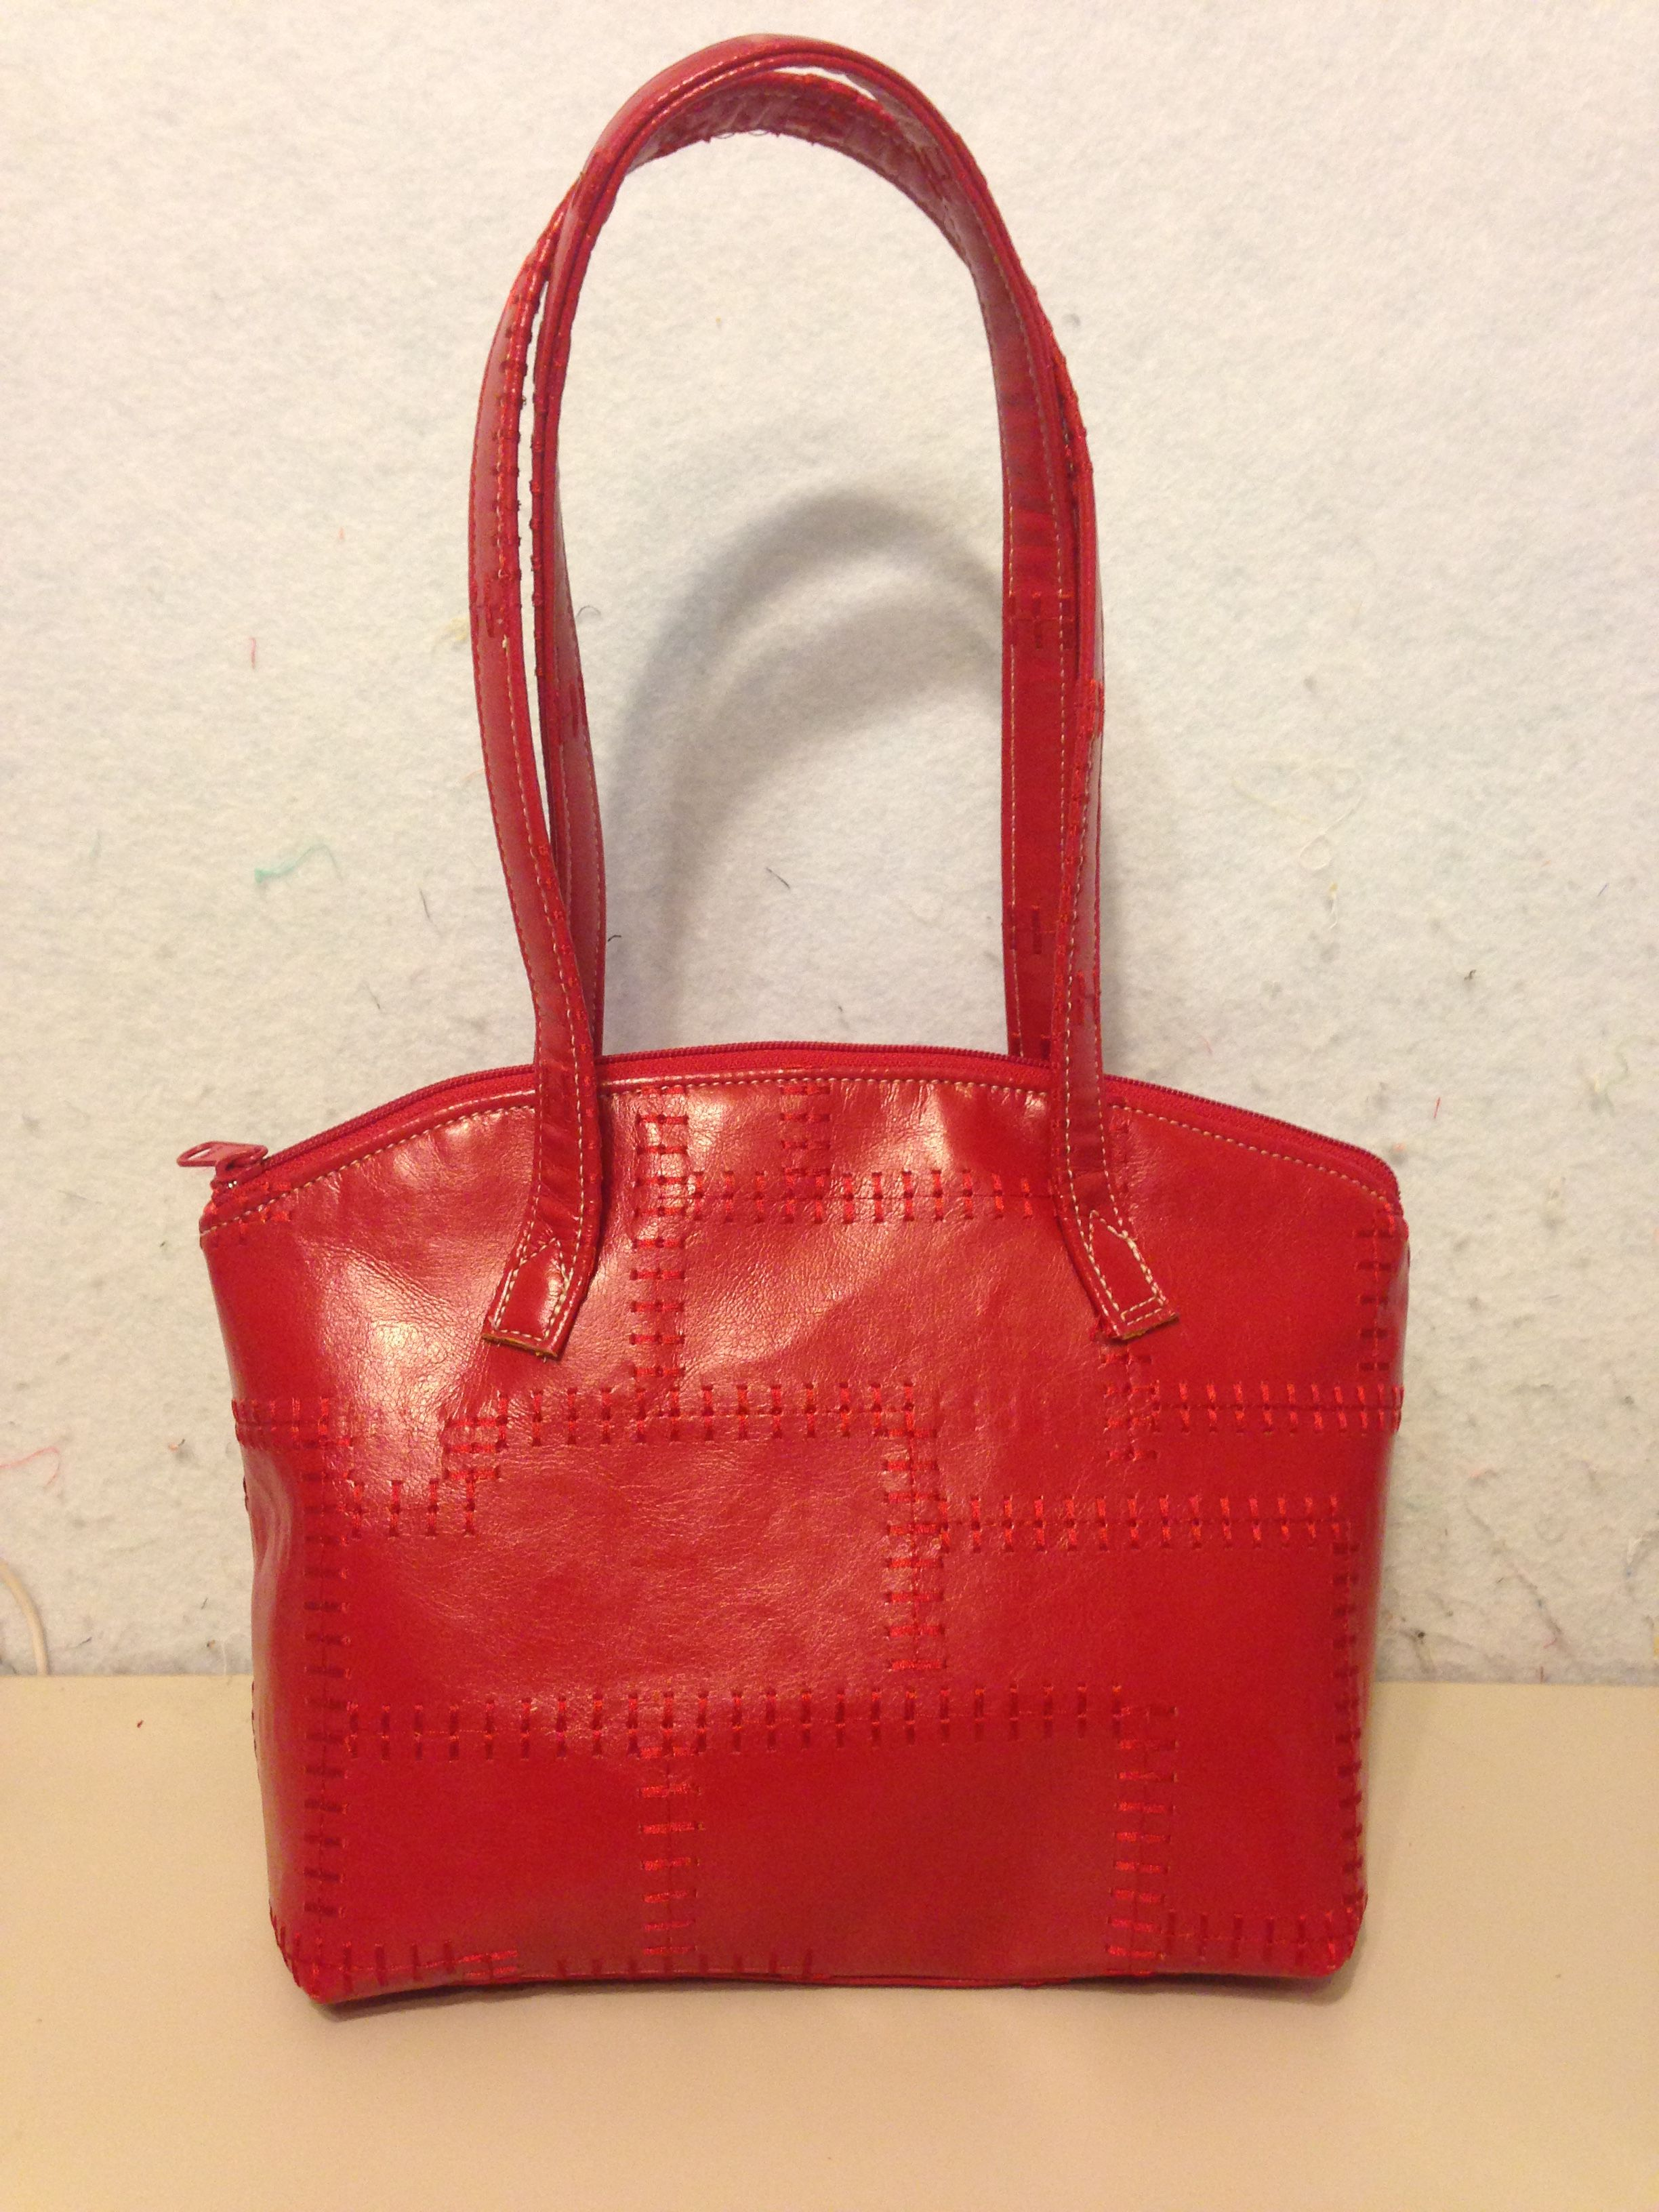 Lola Domed Handbag Pattern By Swoon Sewing Patterns Red Sched Faux Leather Simply Memorable Bags Handmade Handbags 2017